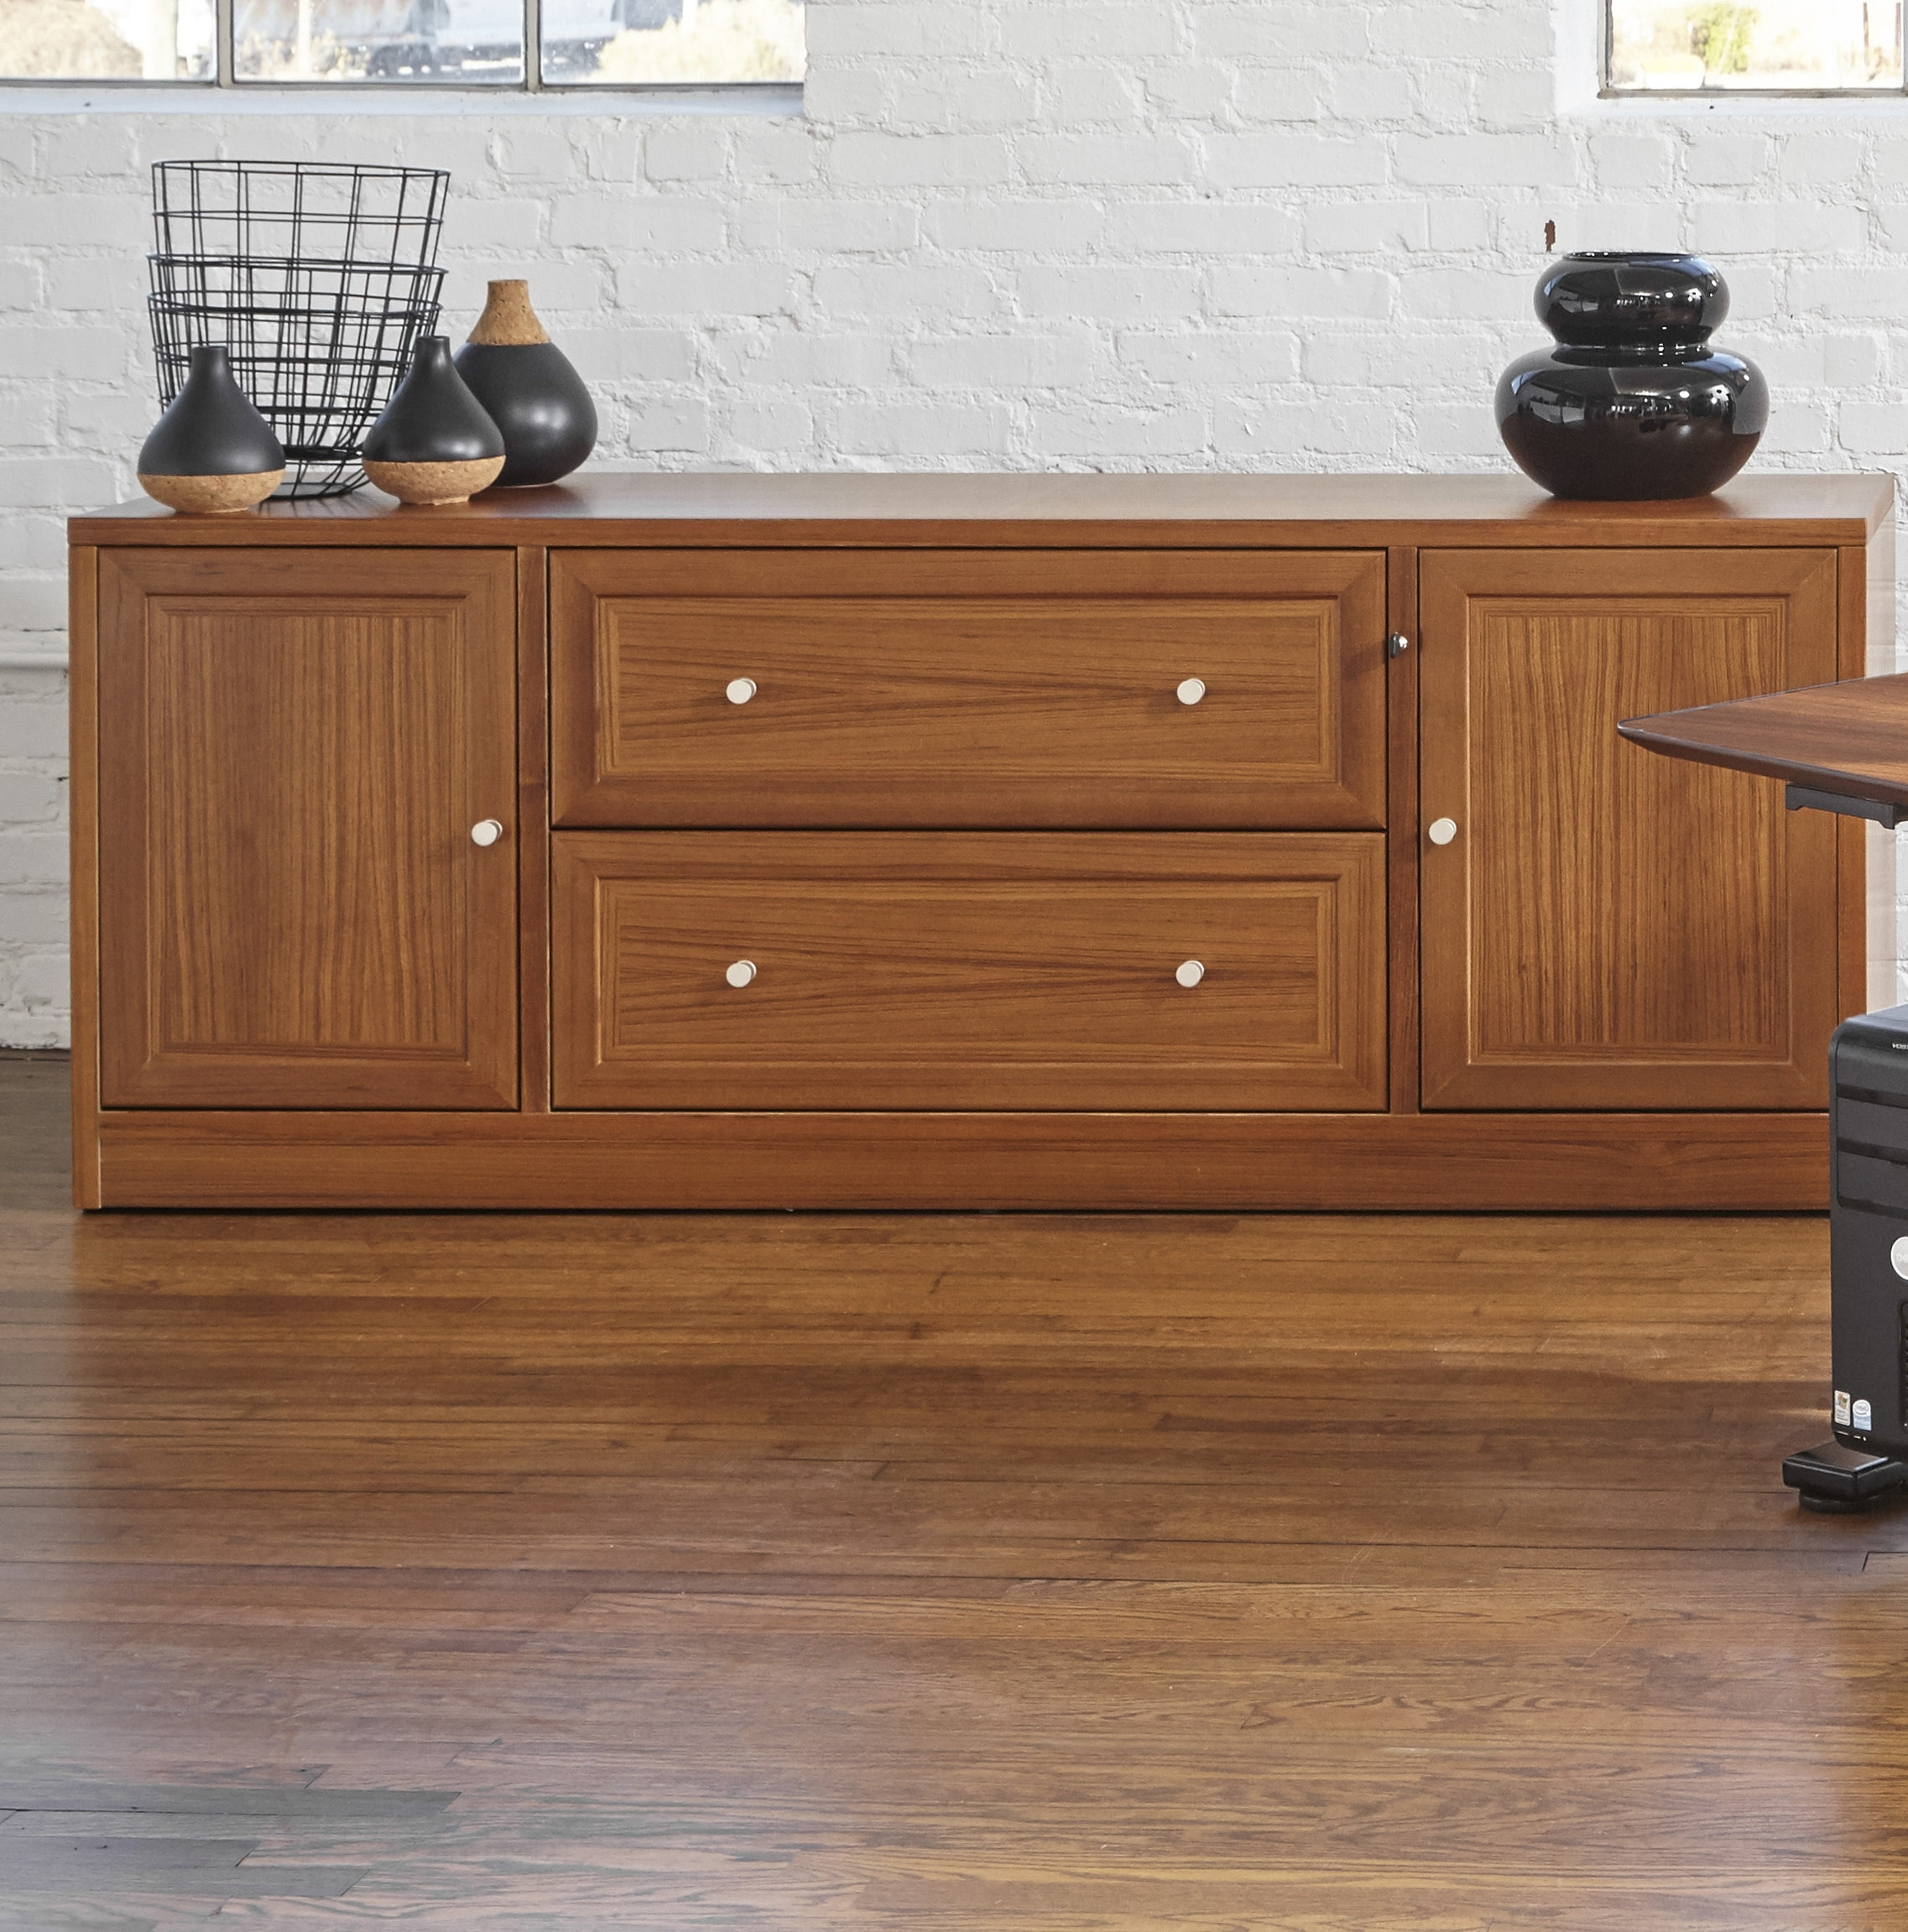 Haaken Furniture Vip Collection Sideboard & Reviews | Wayfair for Lockwood Sideboards (Image 11 of 30)